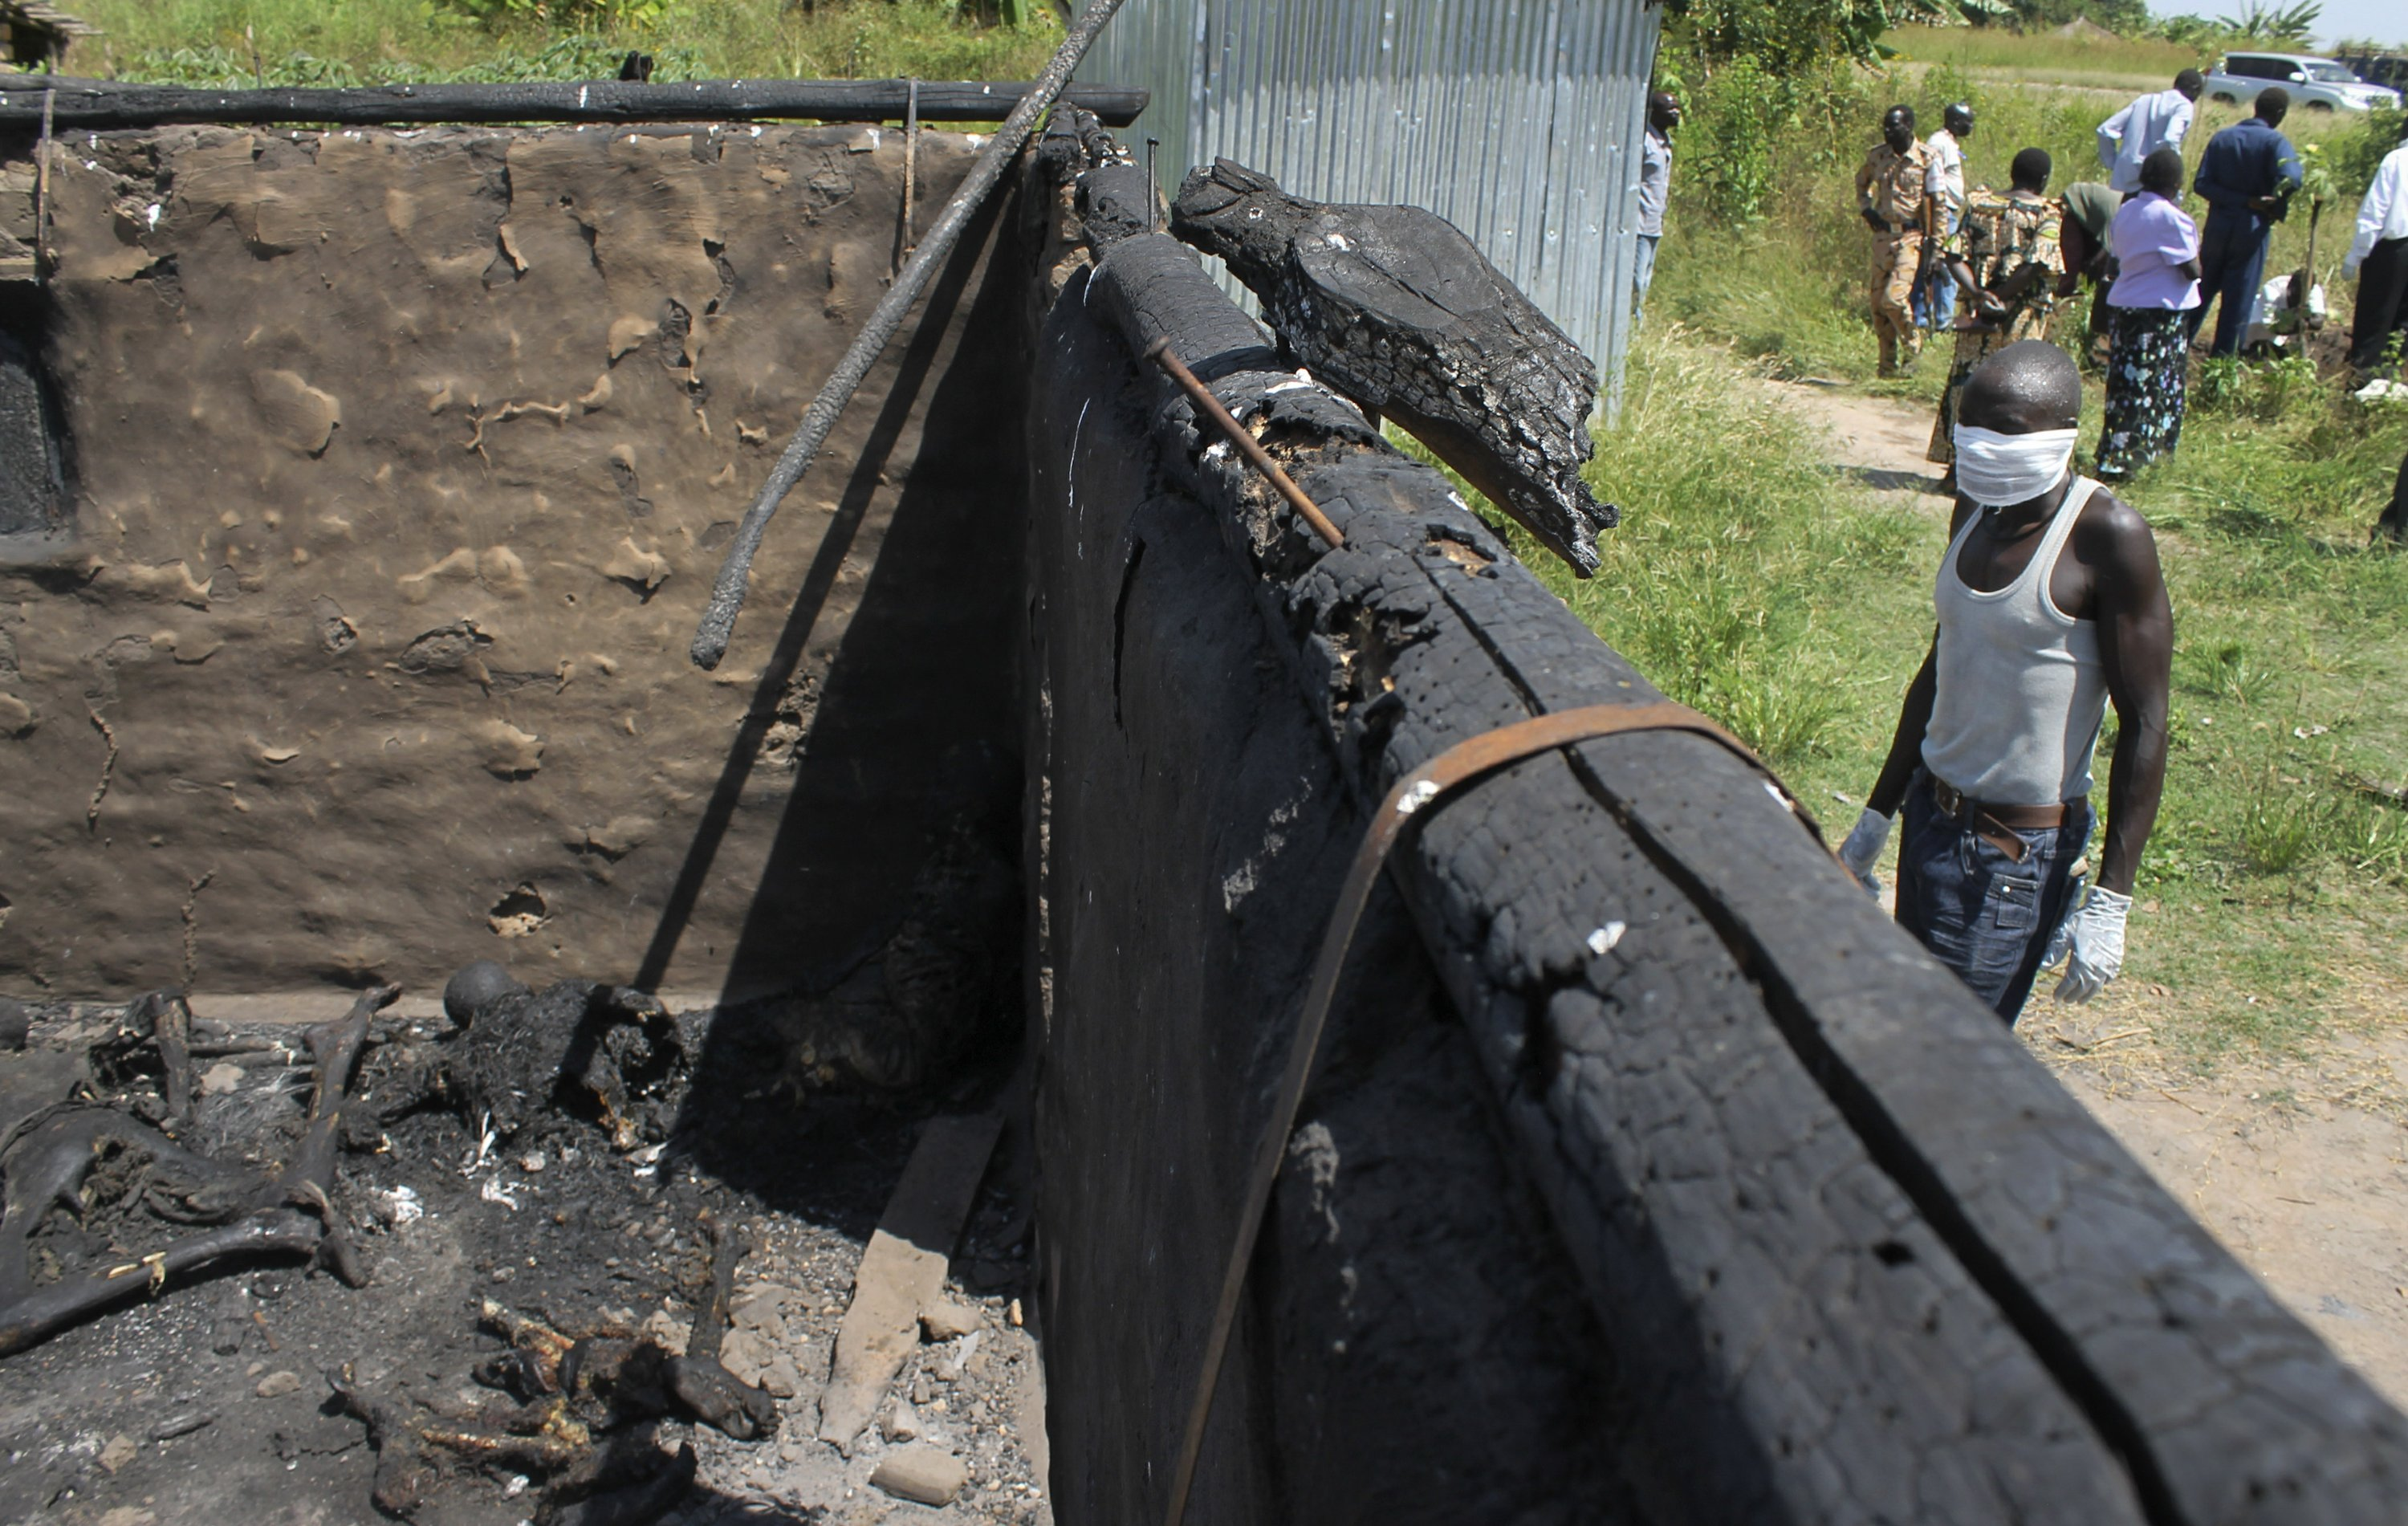 South Sudanese forces blamed for torching thousands of homes